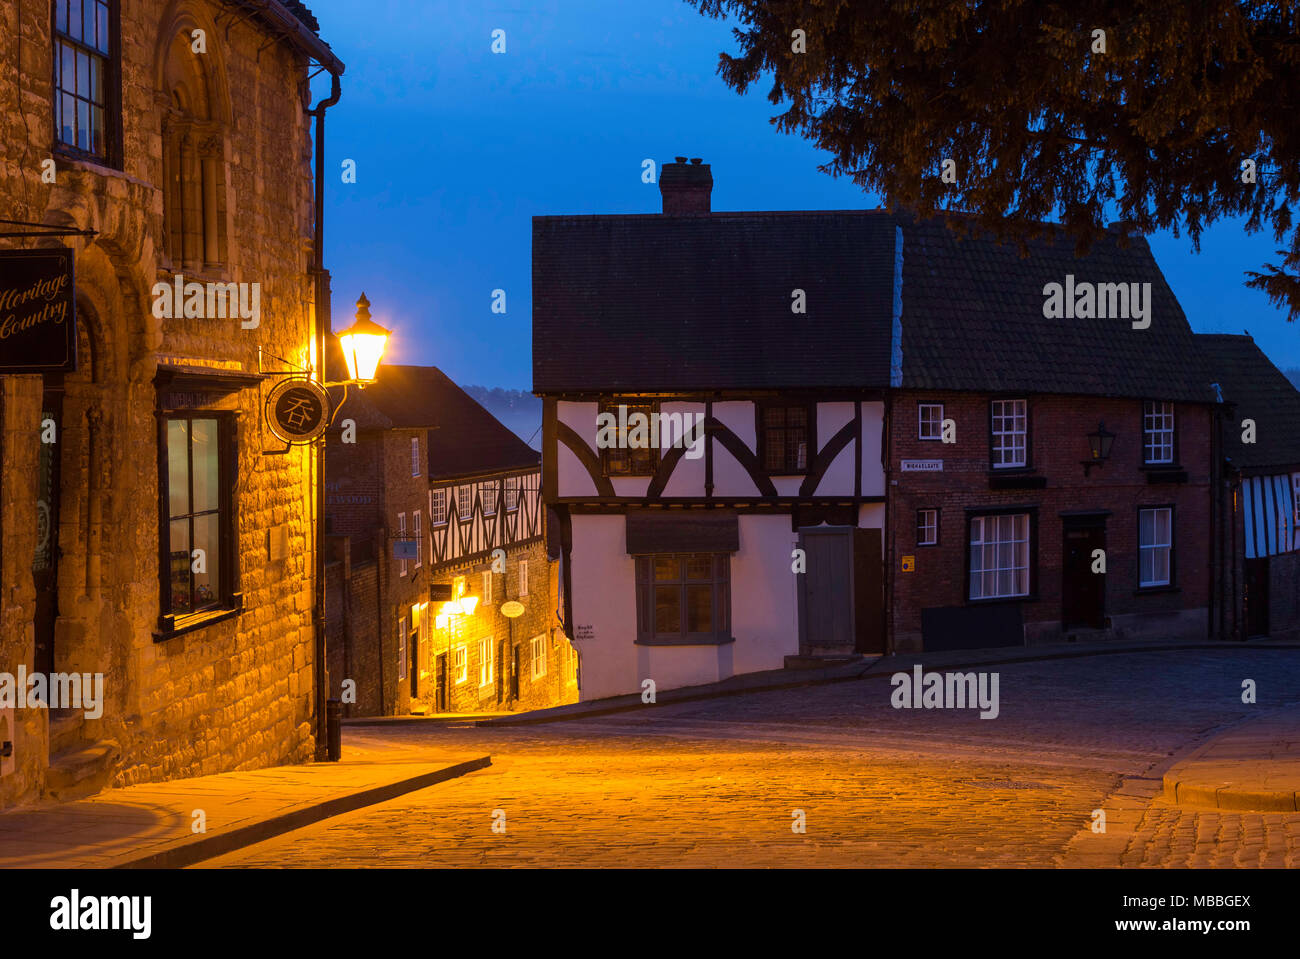 The Medieval buildings of Steep Hill, Lincoln. Lincolnshire, UK during the pre-dawn Blue Hour. - Stock Image